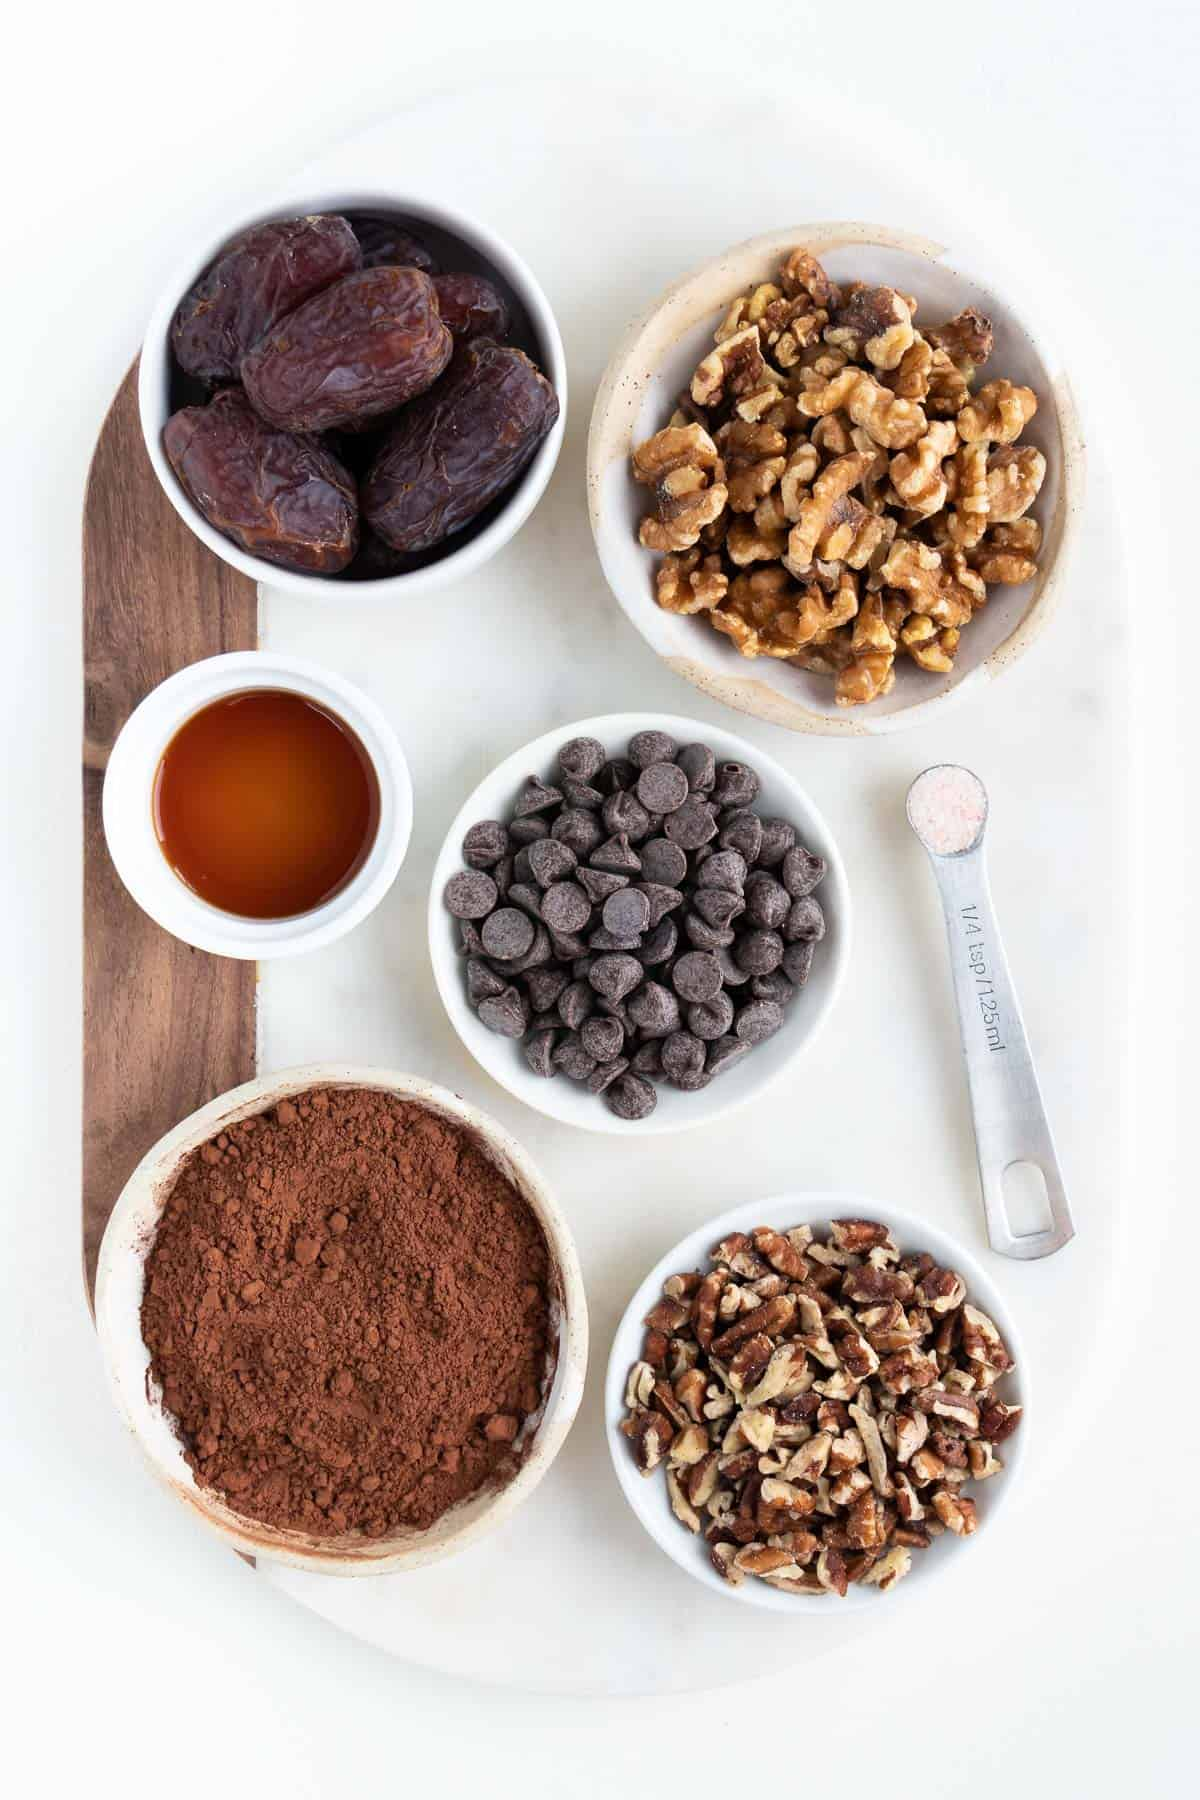 wood and marble cutting board topped with bowls of medjool dates, chocolate chips, walnuts, pecans, maple syrup, and cocoa powder.